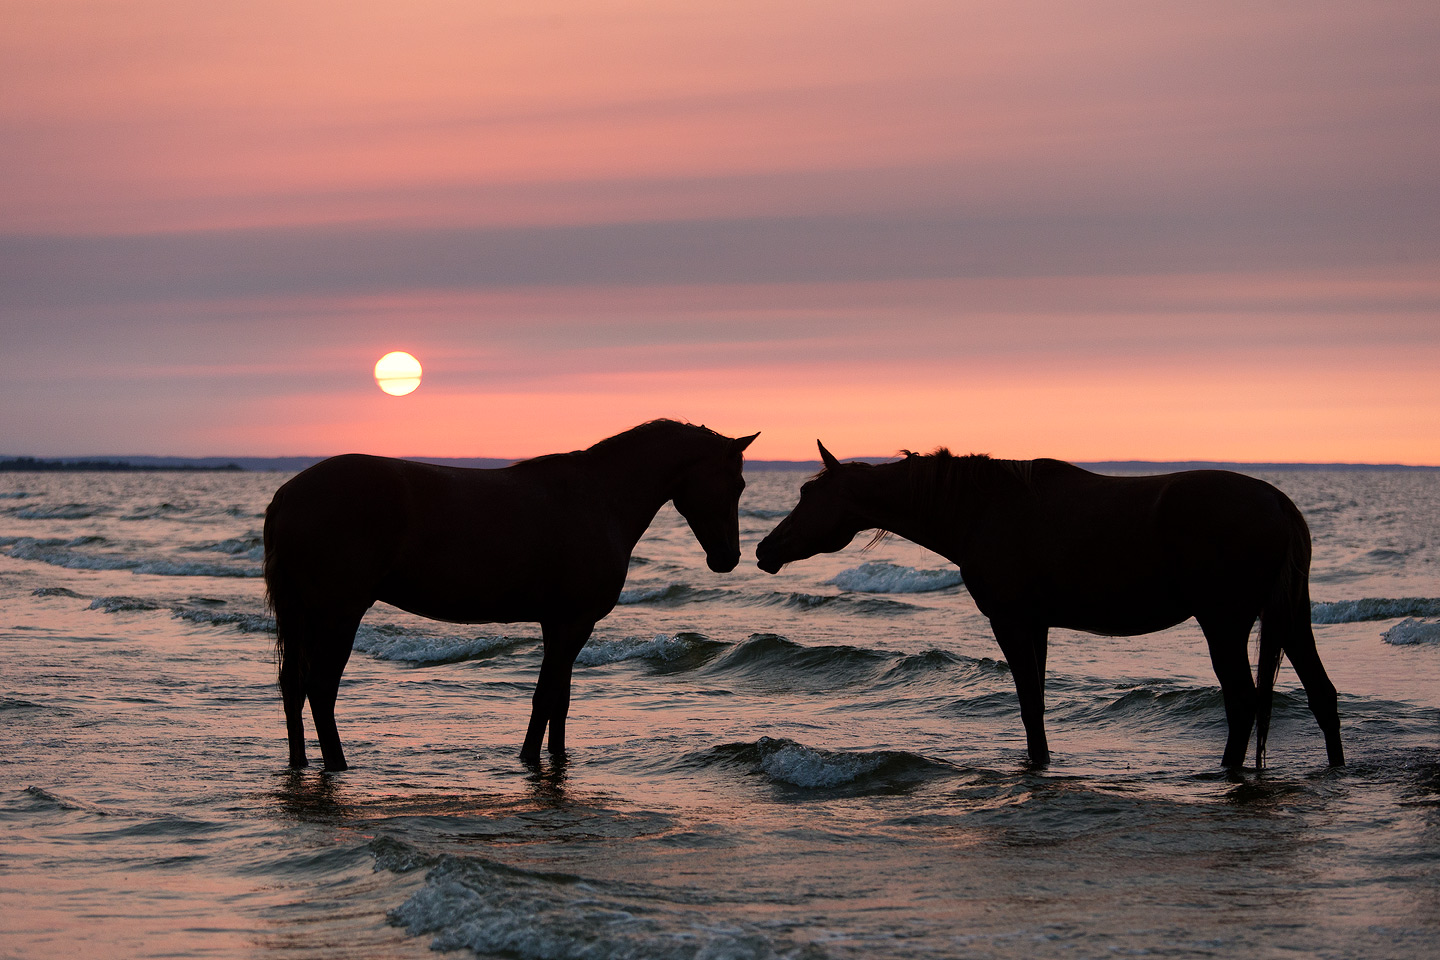 Horses kissing at sunset in the sea